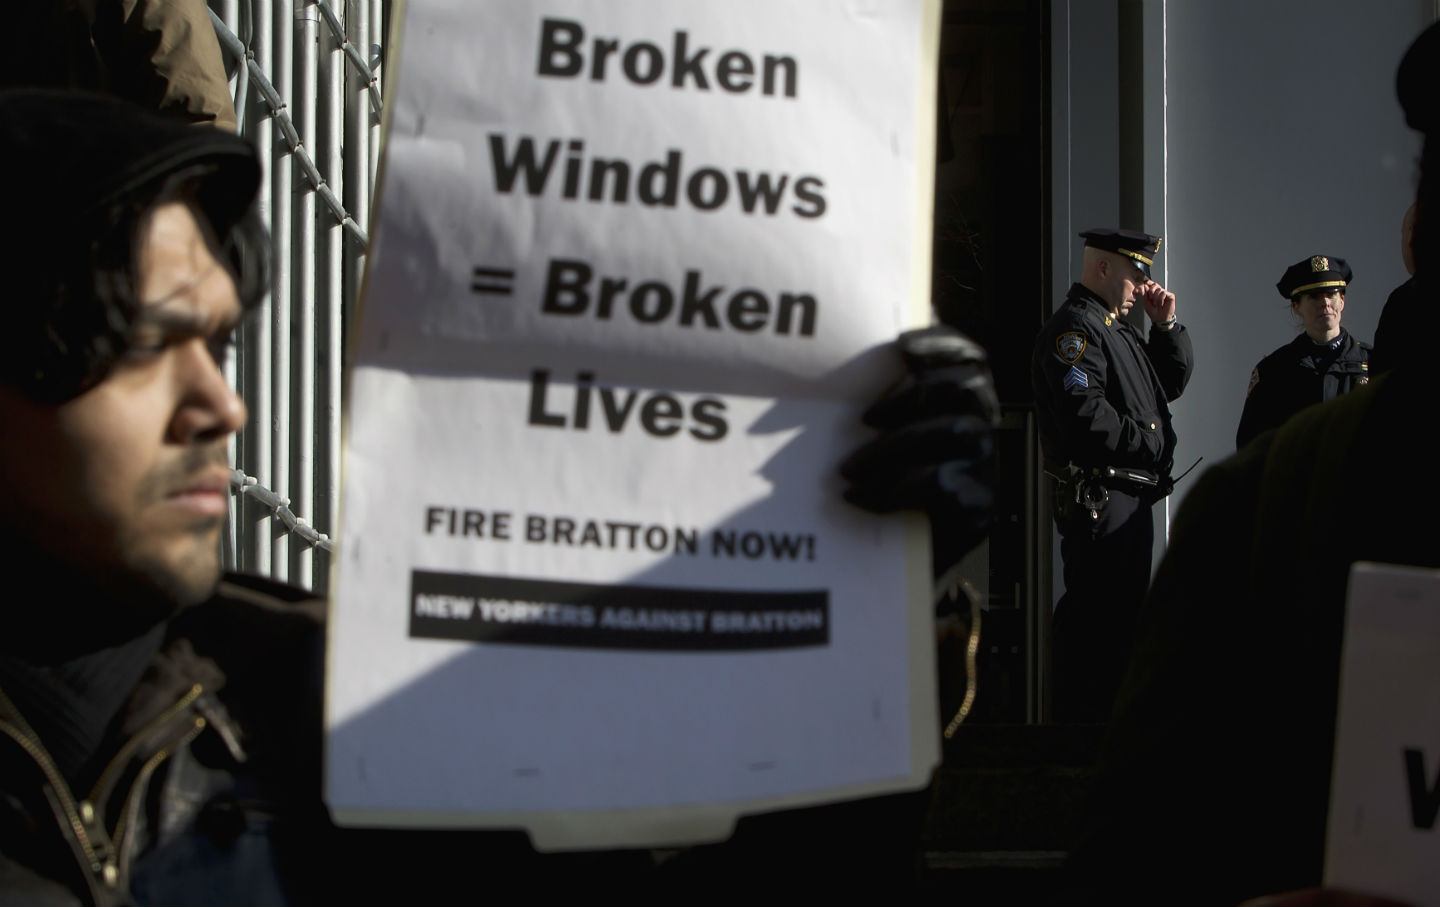 Protest against Broken Windows